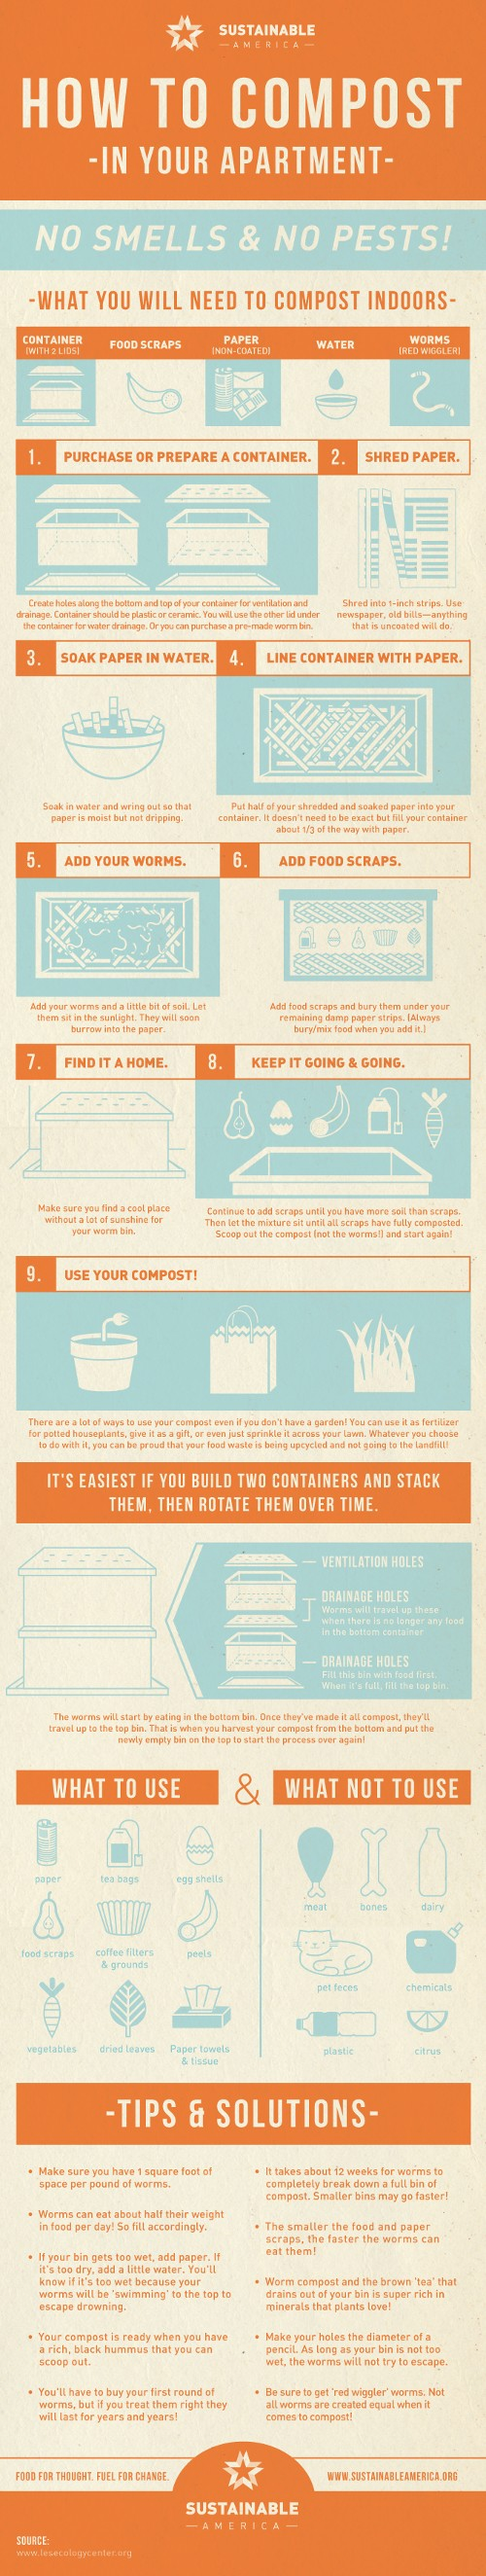 How to Compost in Your Apartment - EcoWatch